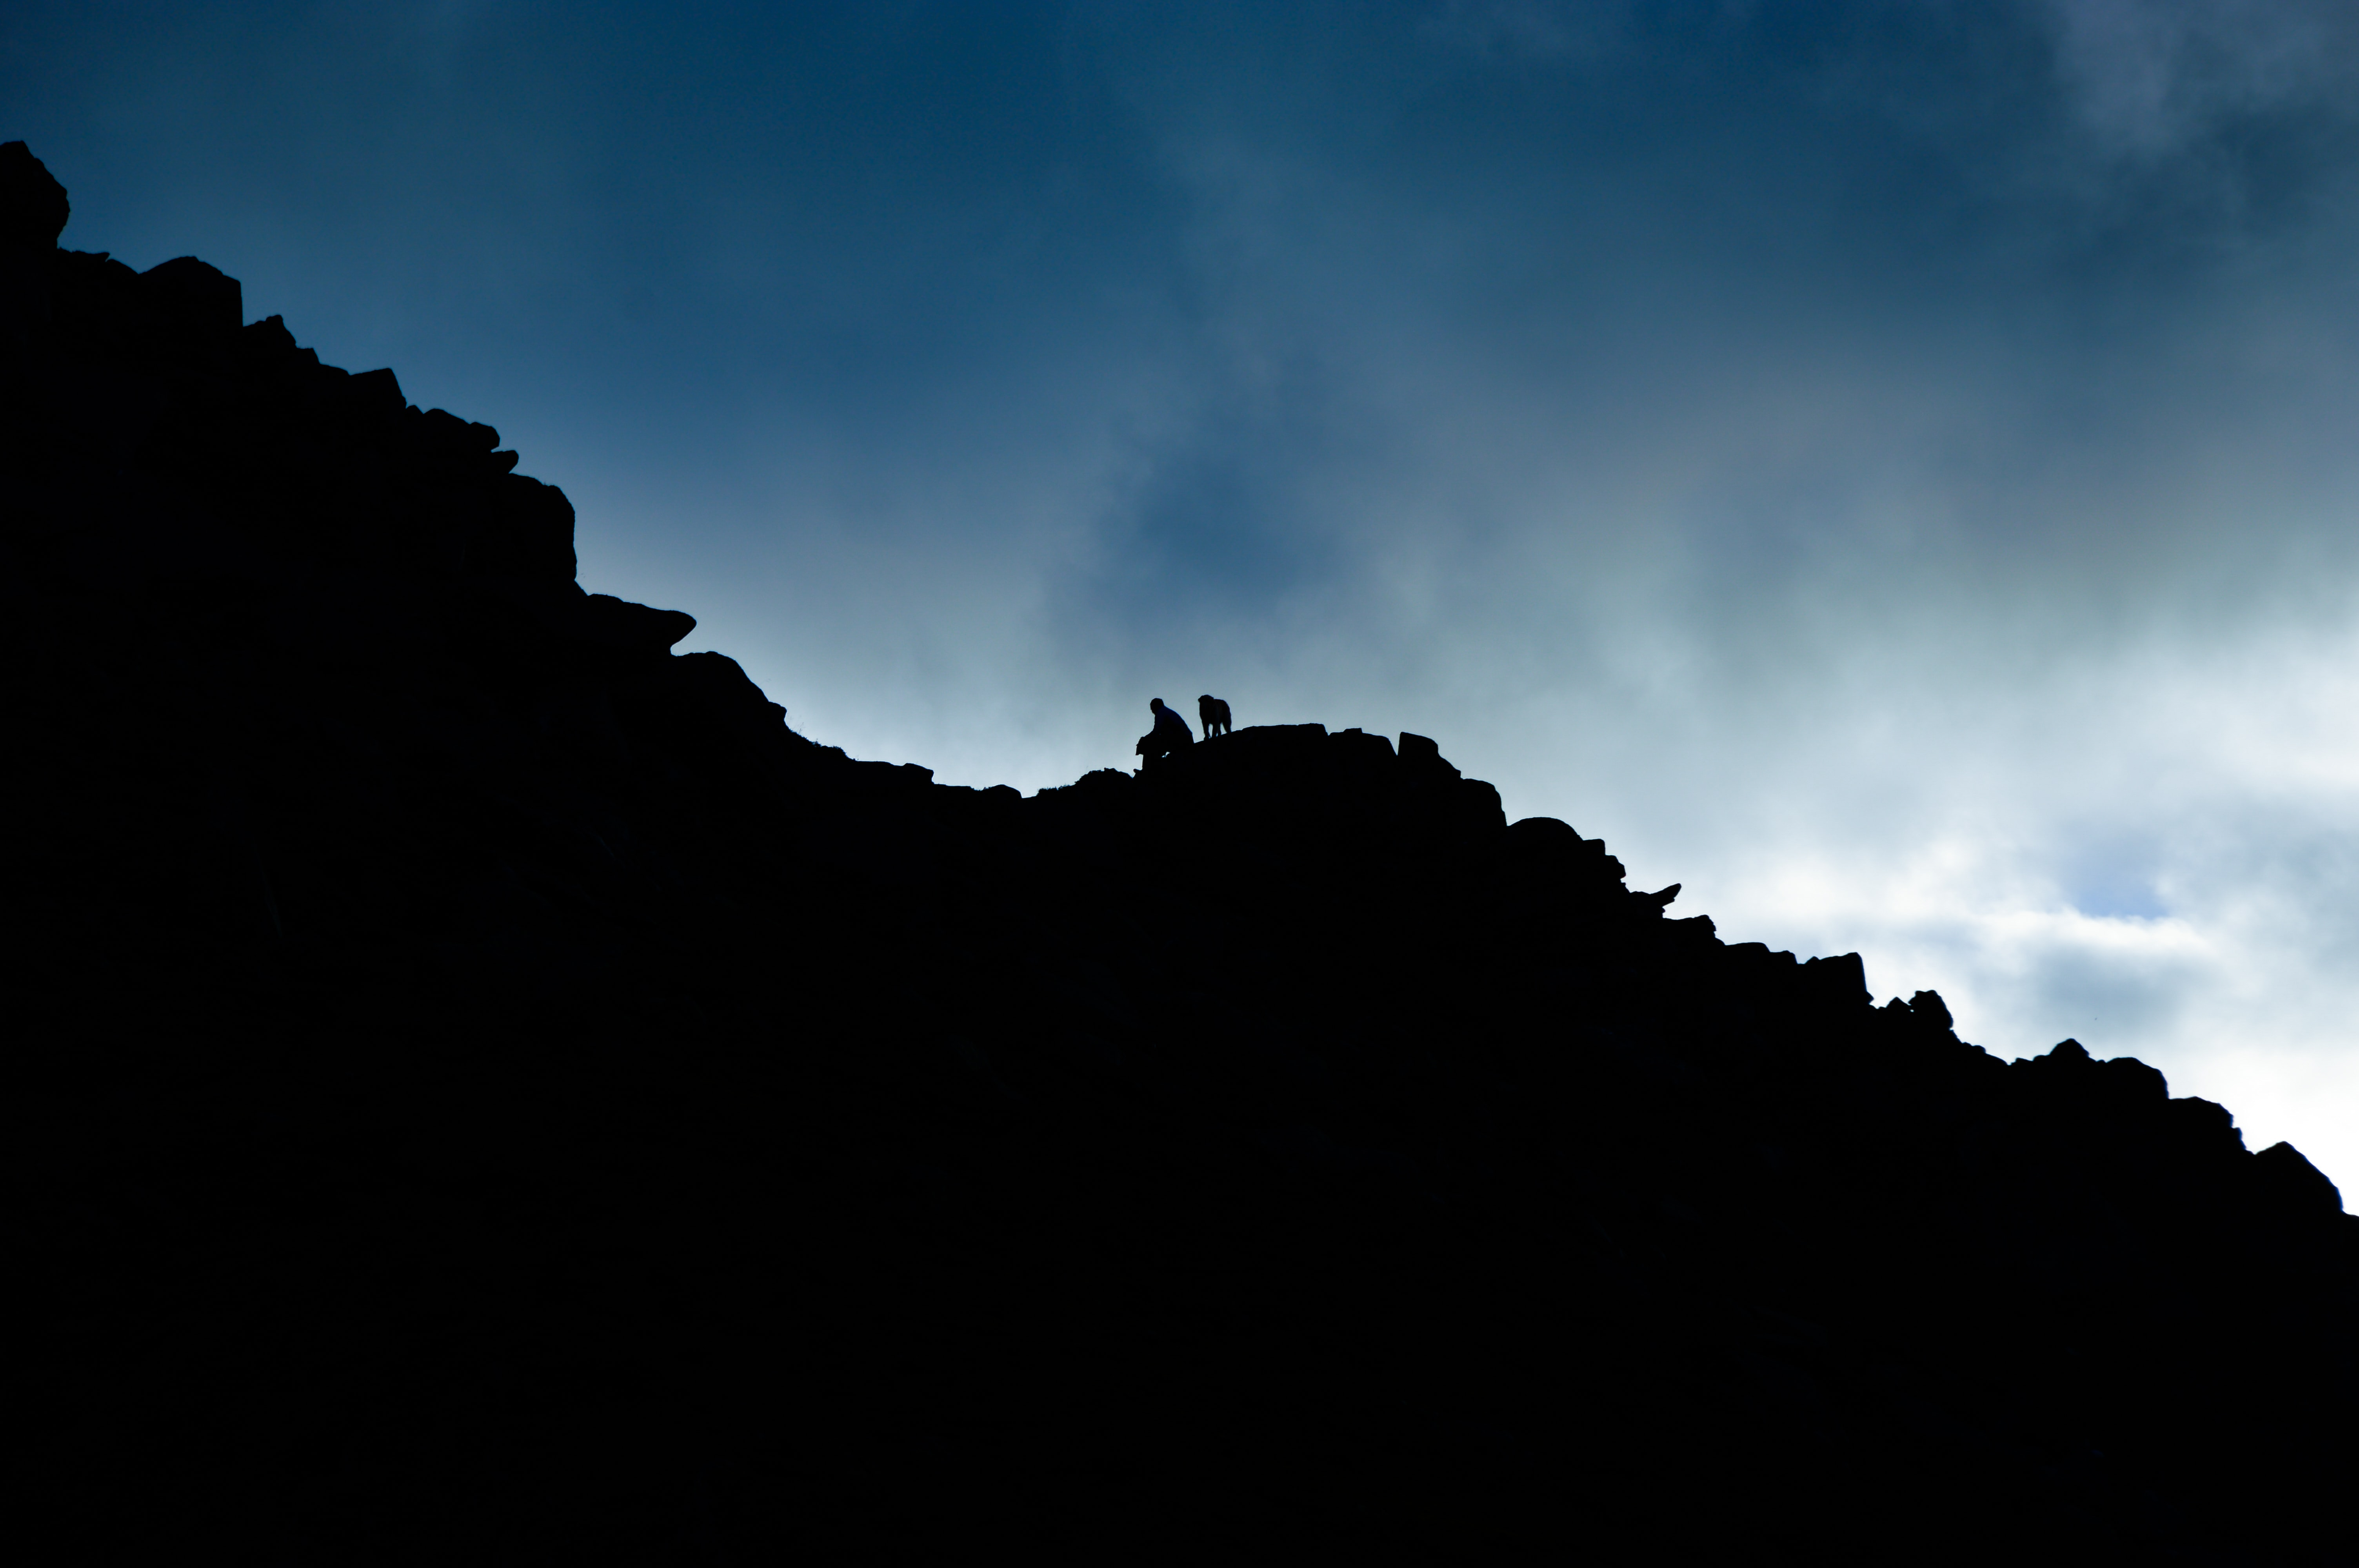 low angle of person on rock cliff